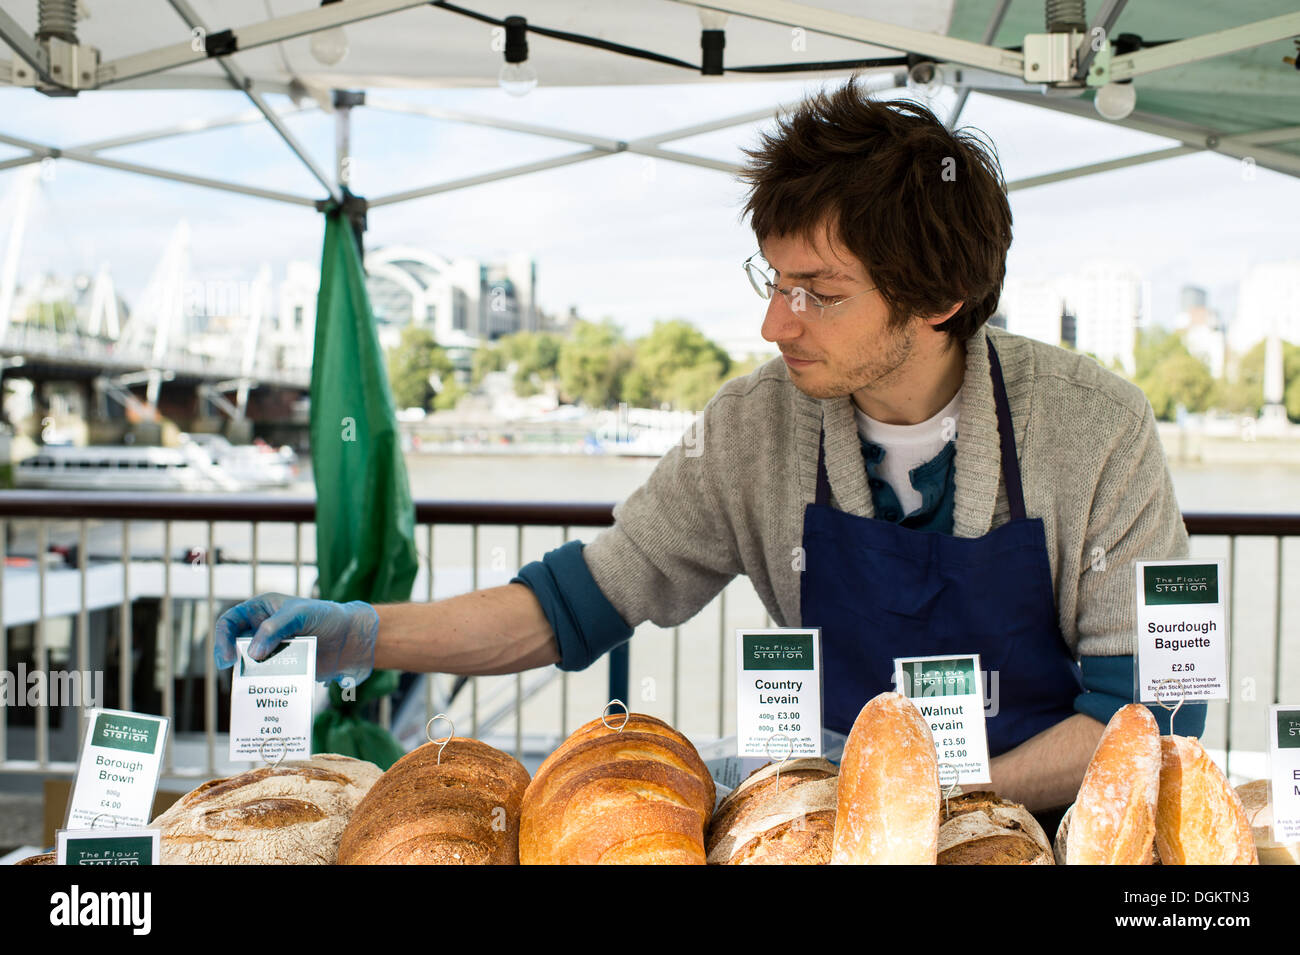 The market stall of an artisan bakery at the London Bread Festival. - Stock Image